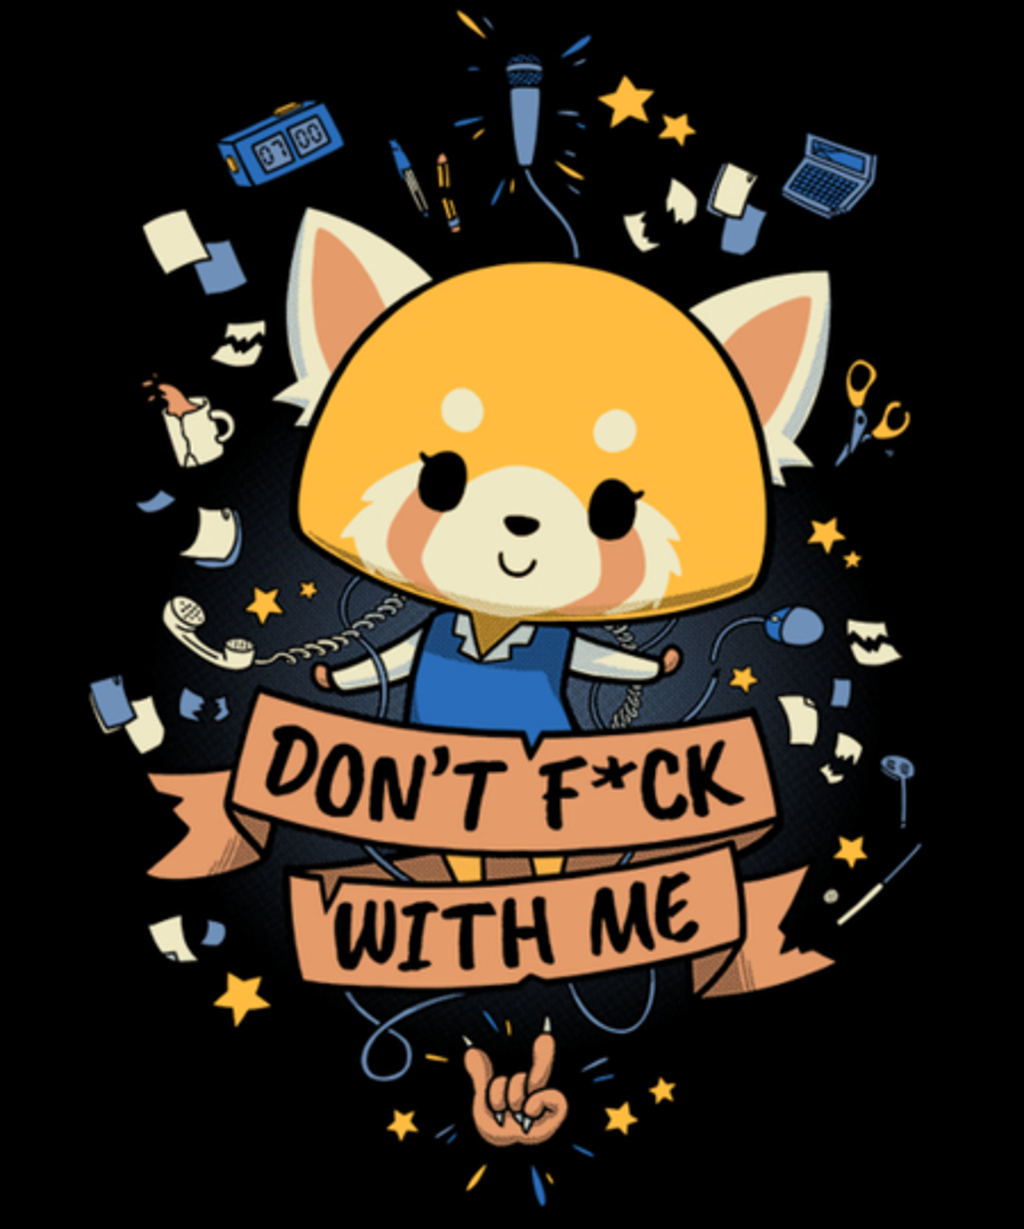 Qwertee: Don't F*ck With Me